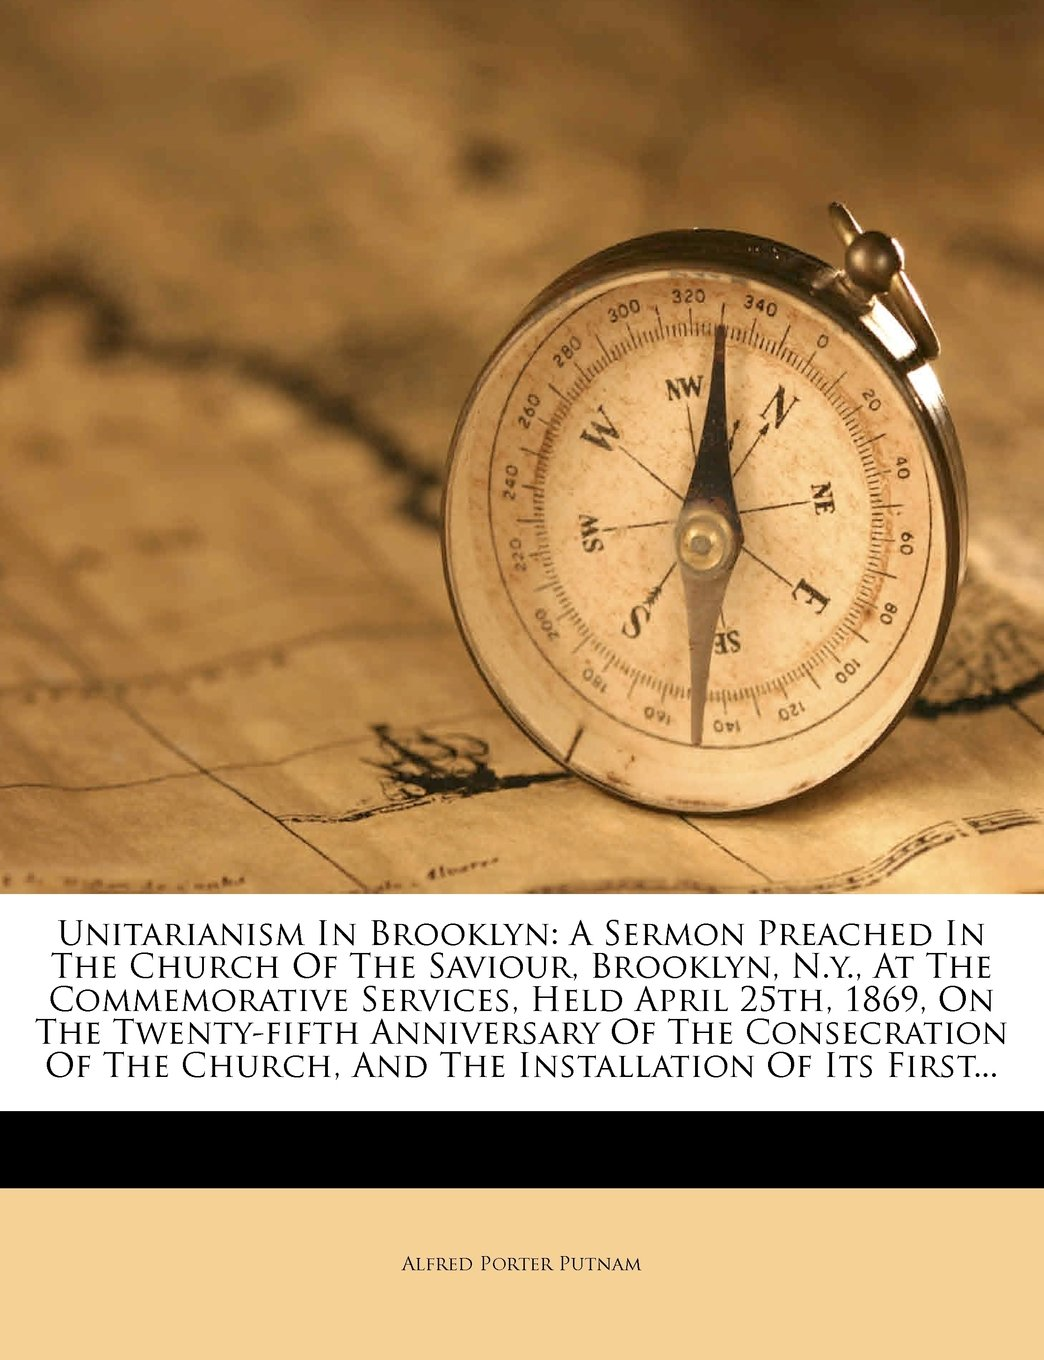 Read Online Unitarianism In Brooklyn: A Sermon Preached In The Church Of The Saviour, Brooklyn, N.y., At The Commemorative Services, Held April 25th, 1869, On The ... Church, And The Installation Of Its First... pdf